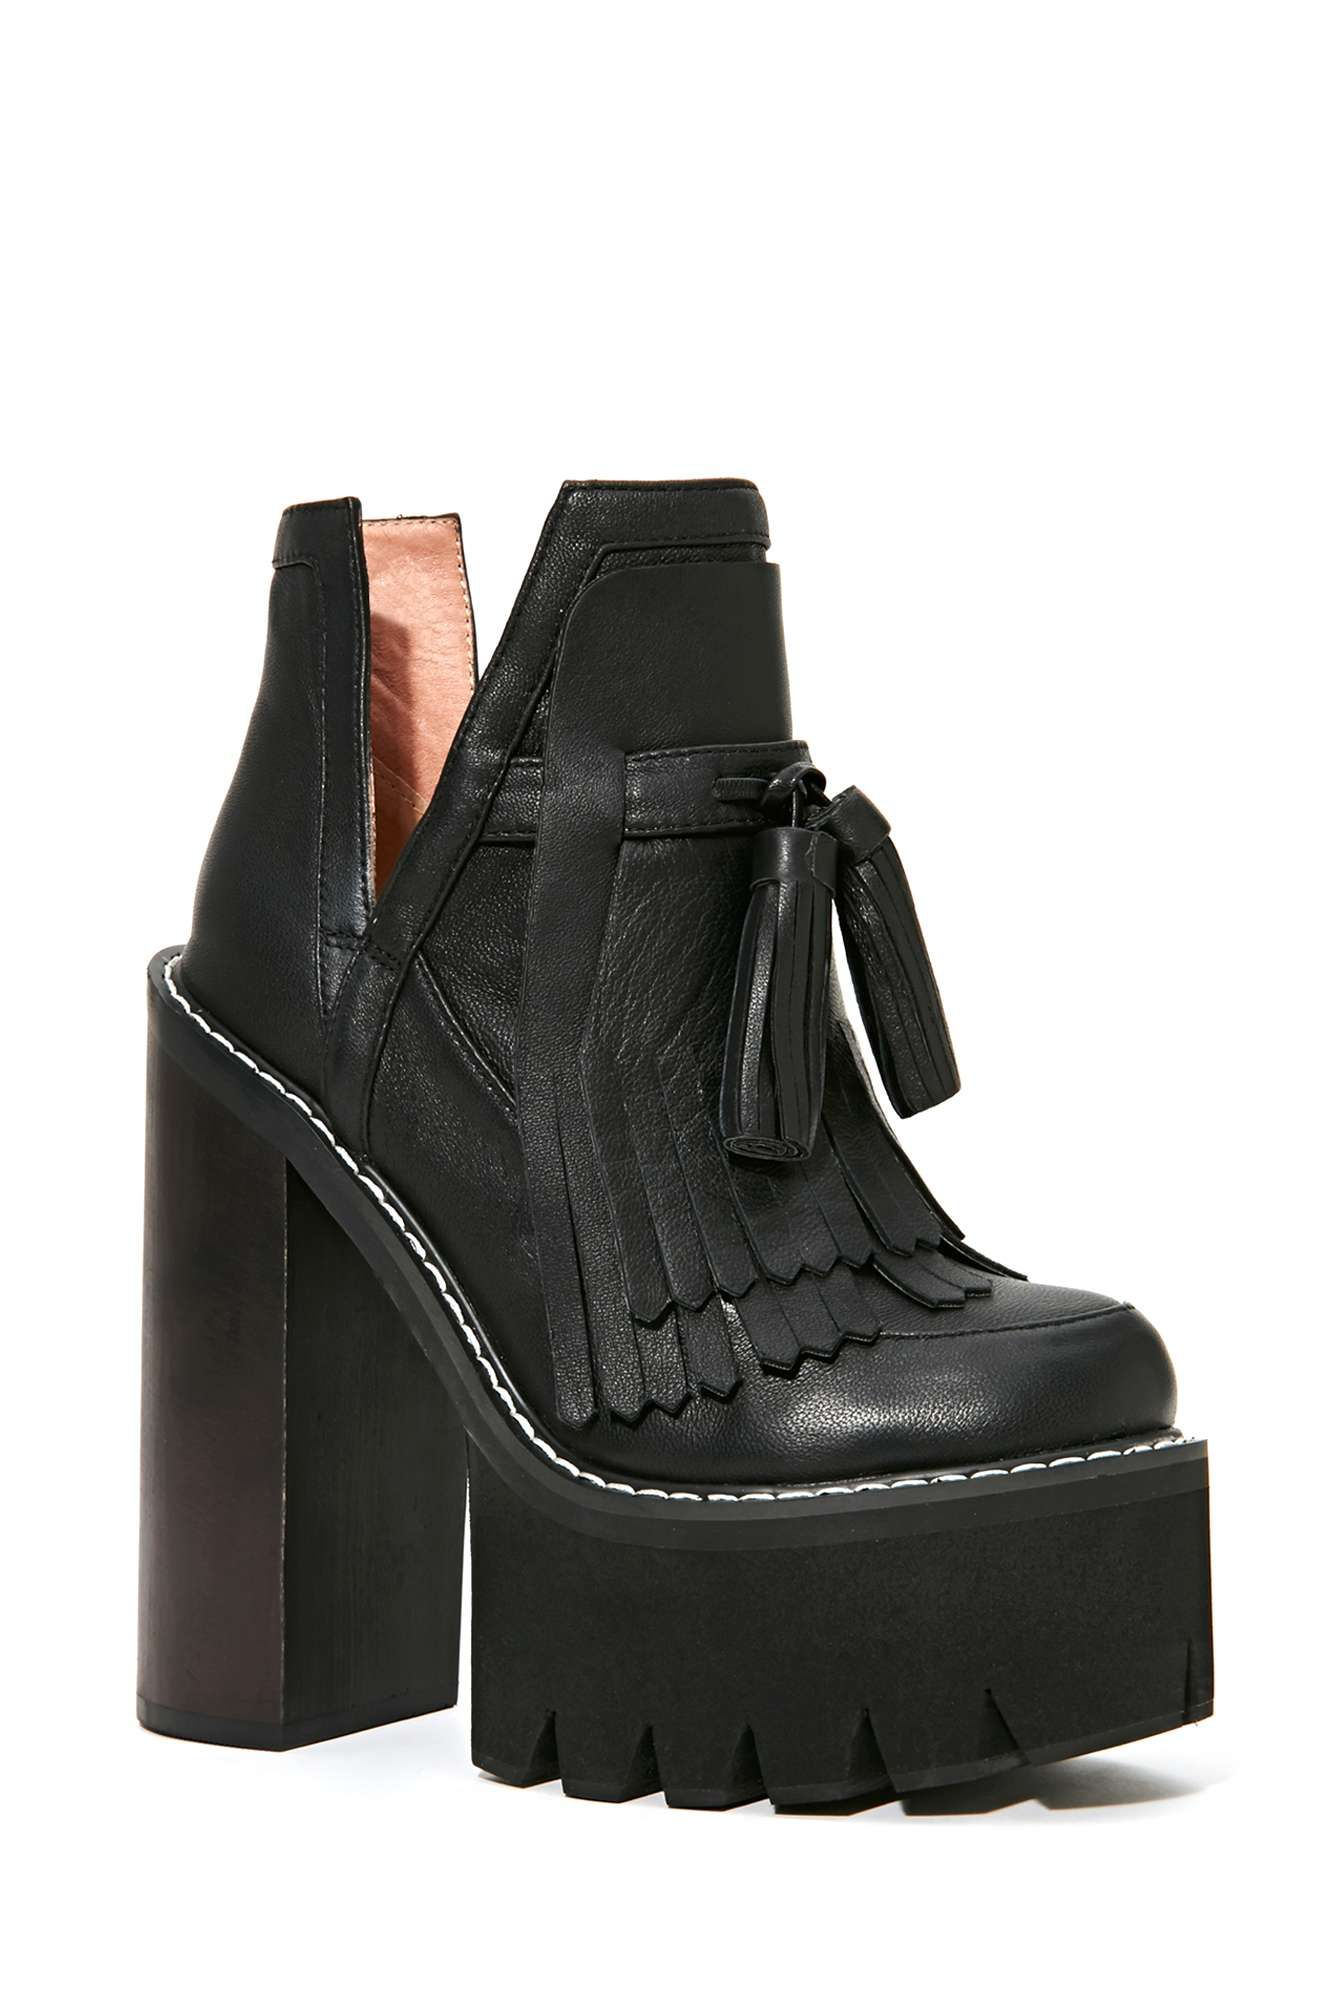 Jeffrey Campbell O-Quinn Platform Boot - Black | Shop Shoes at Nasty Gal